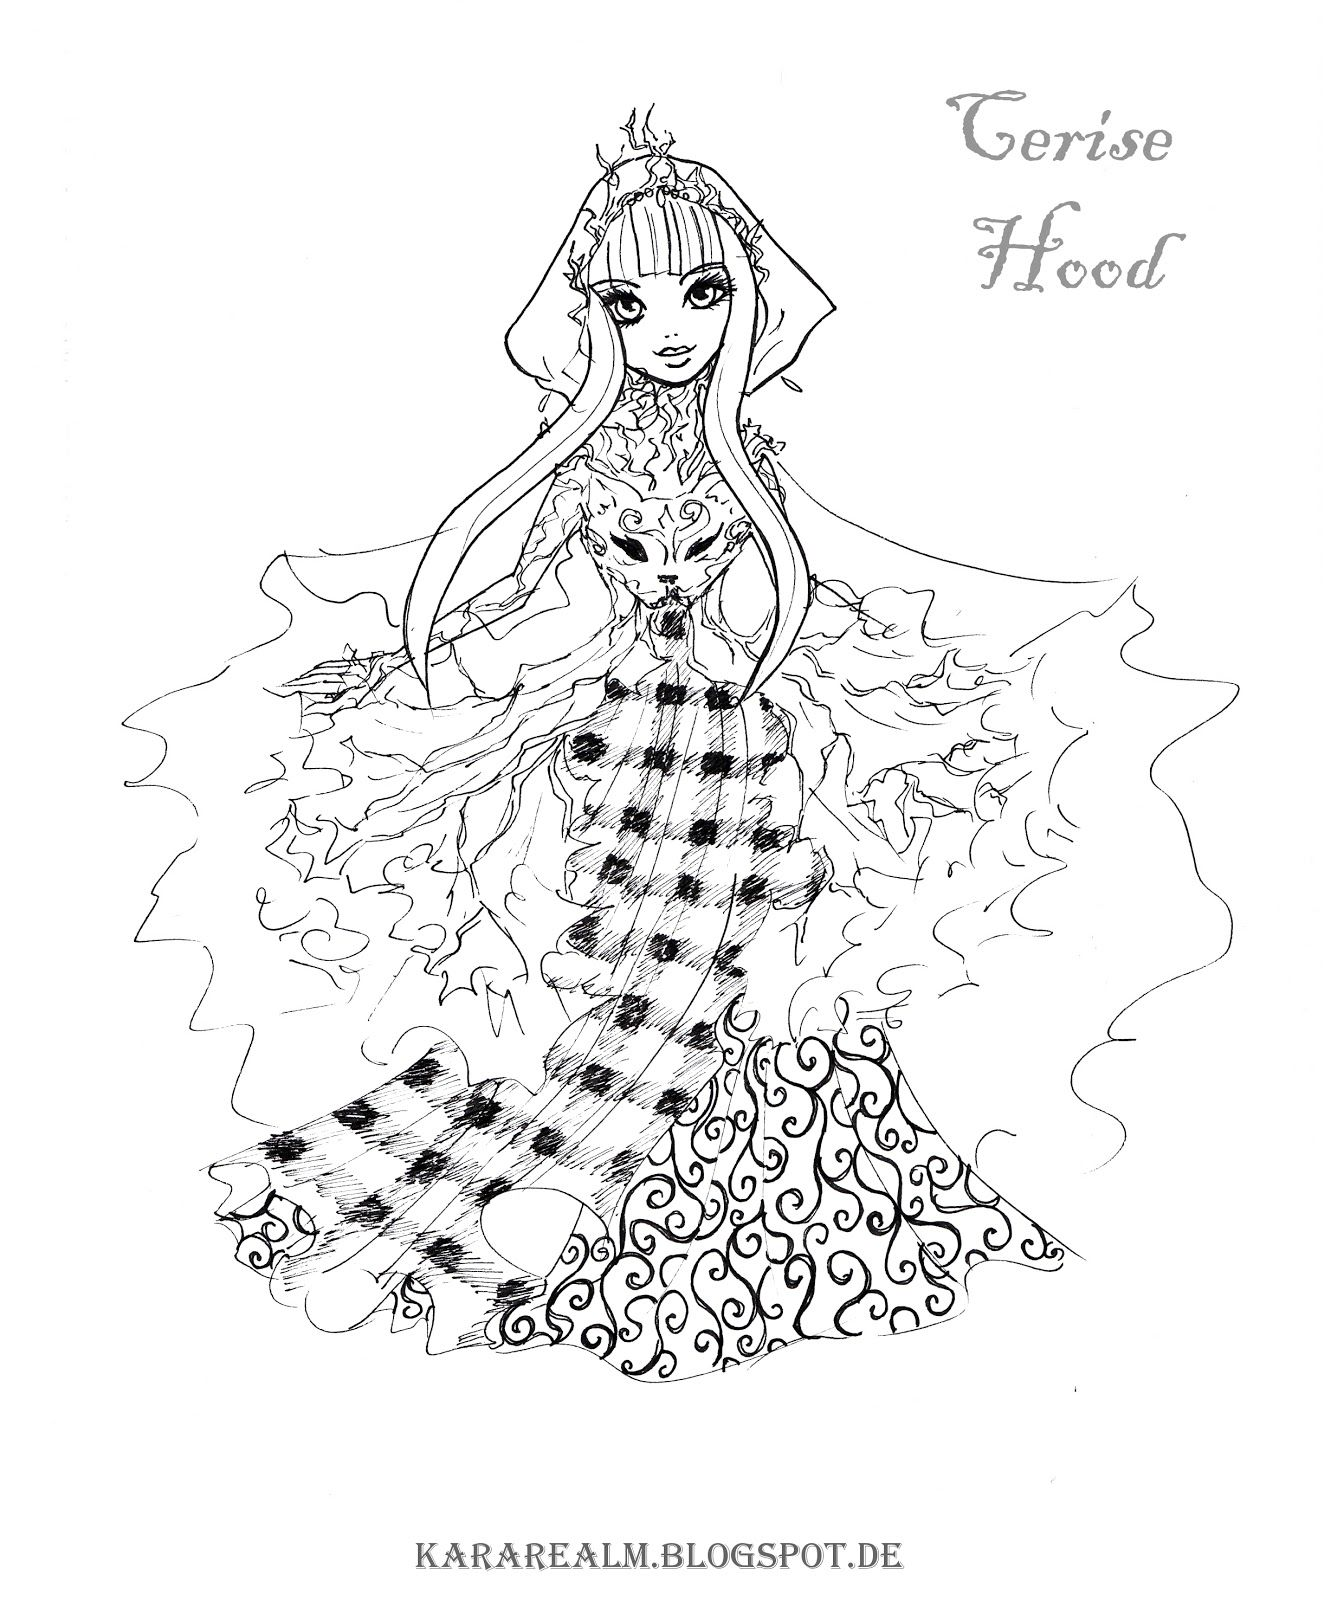 1331x1600 Kara Realm Ever After High Coloring Pages Cerise Hood